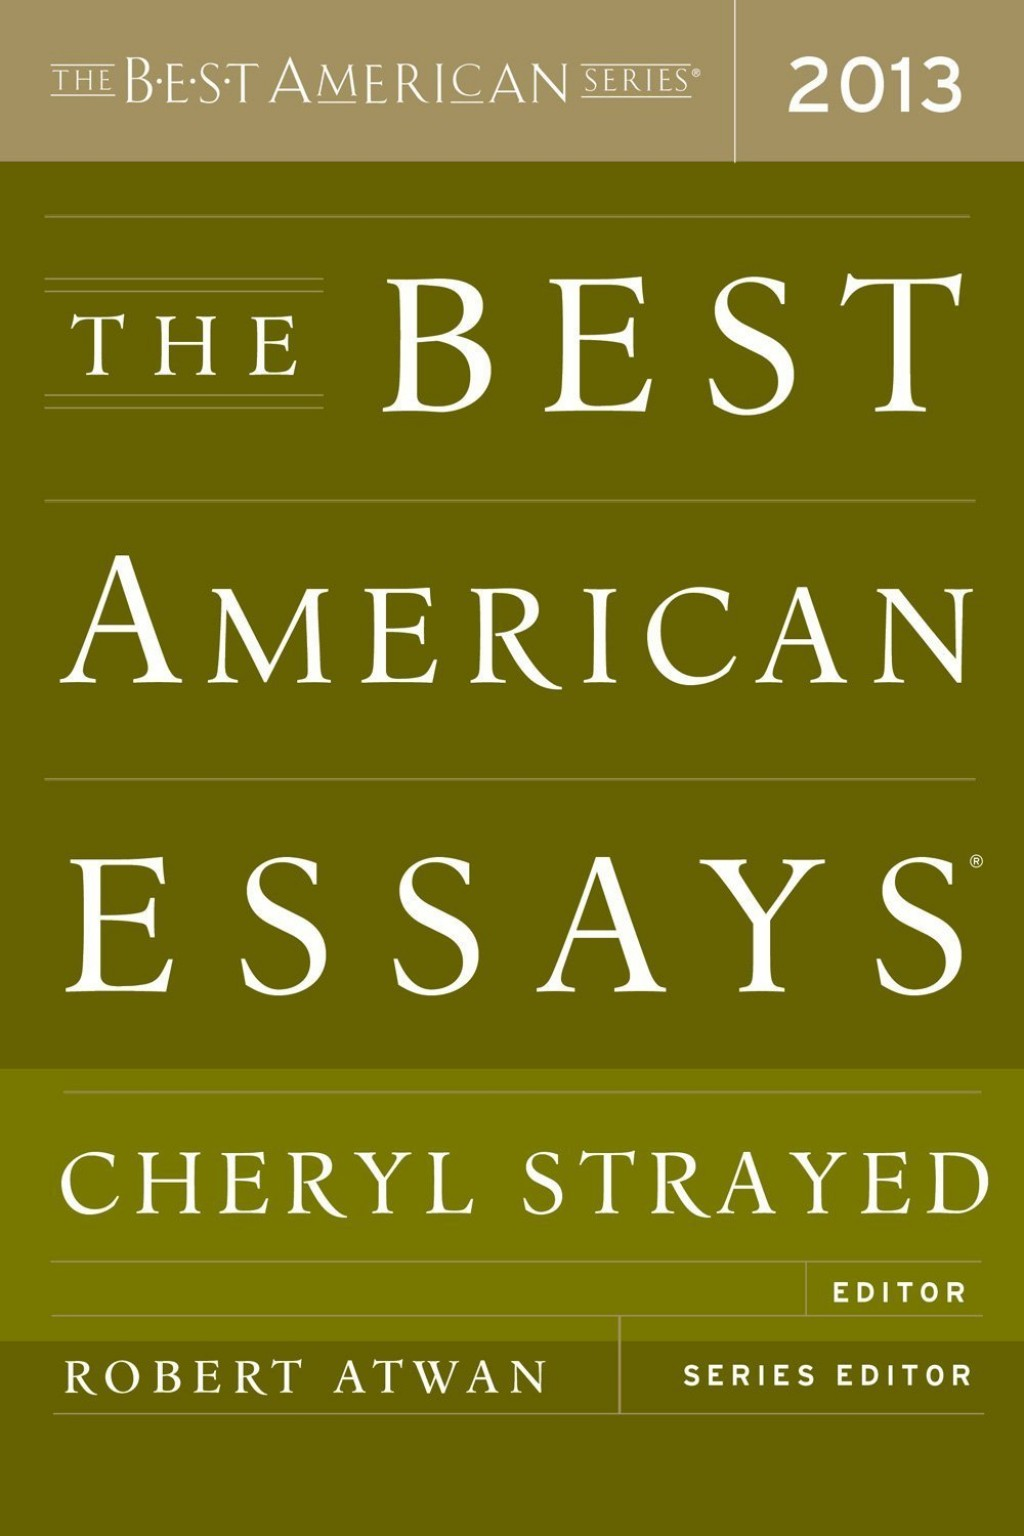 003 Best American Essays Essay Example Striking 2017 Pdf Submissions 2019 Of The Century Table Contents Large